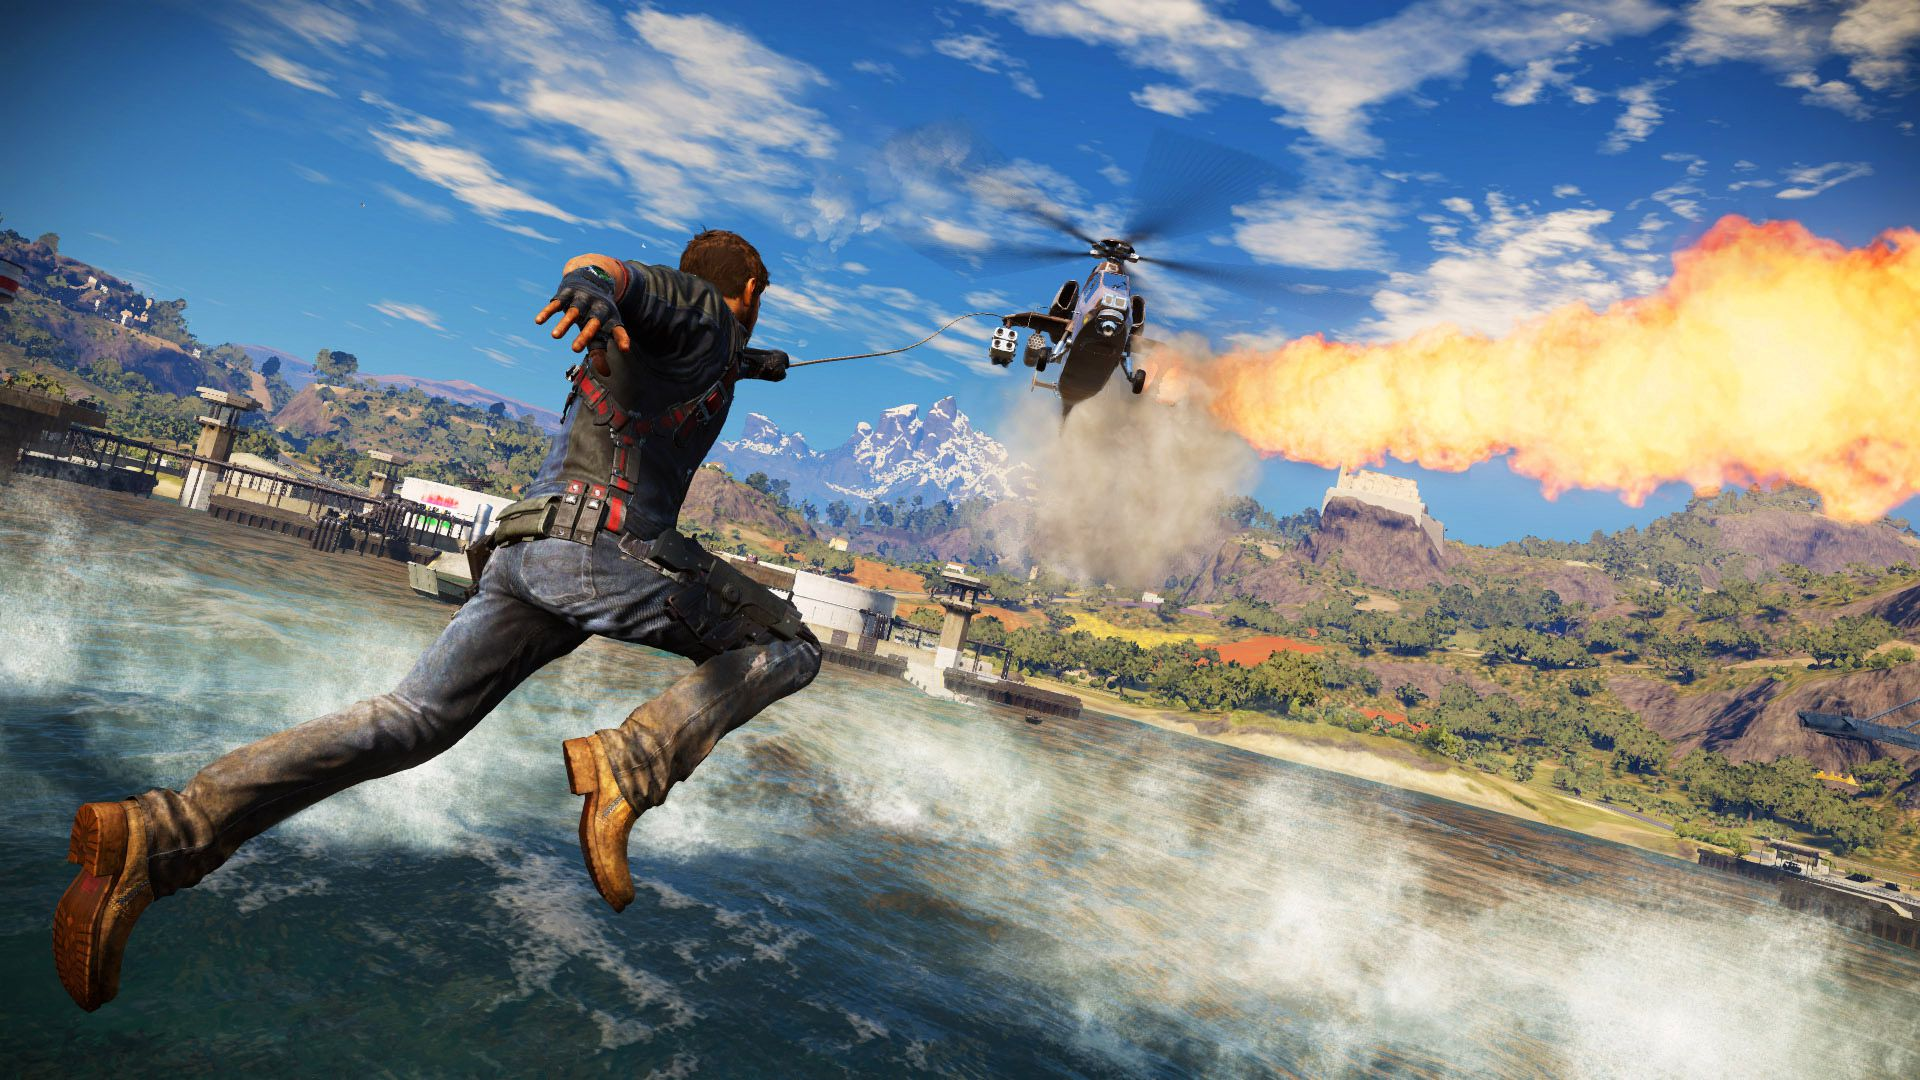 Watch Just Cause 3's explosive gameplay walkthrough from E3 2015